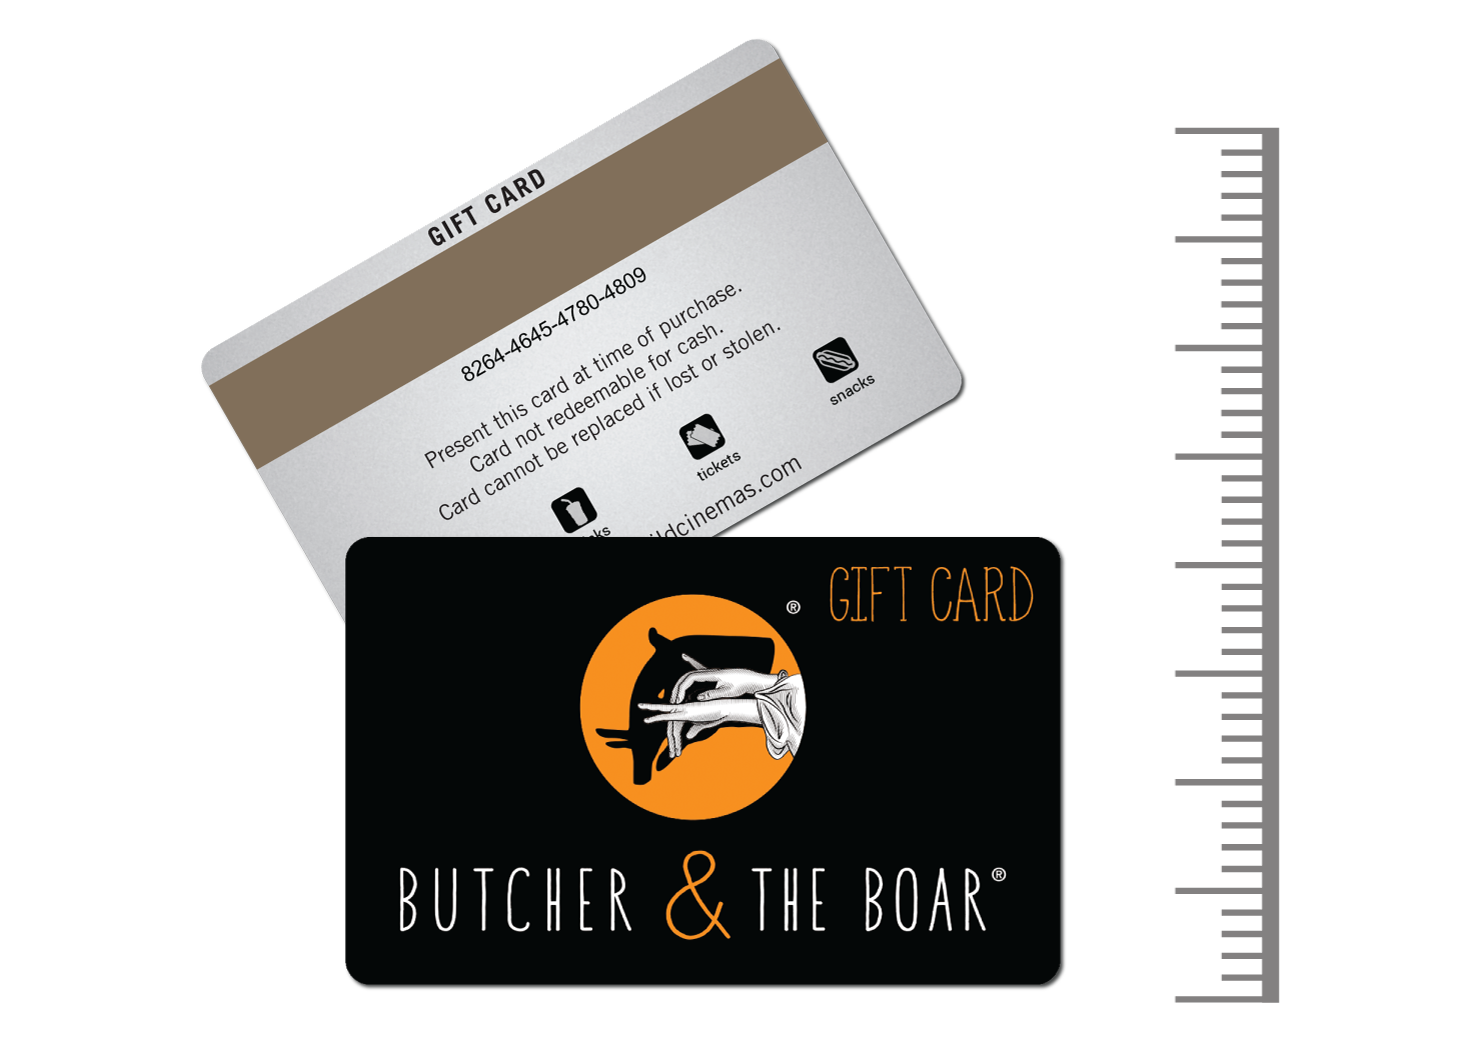 Business Gift Cards